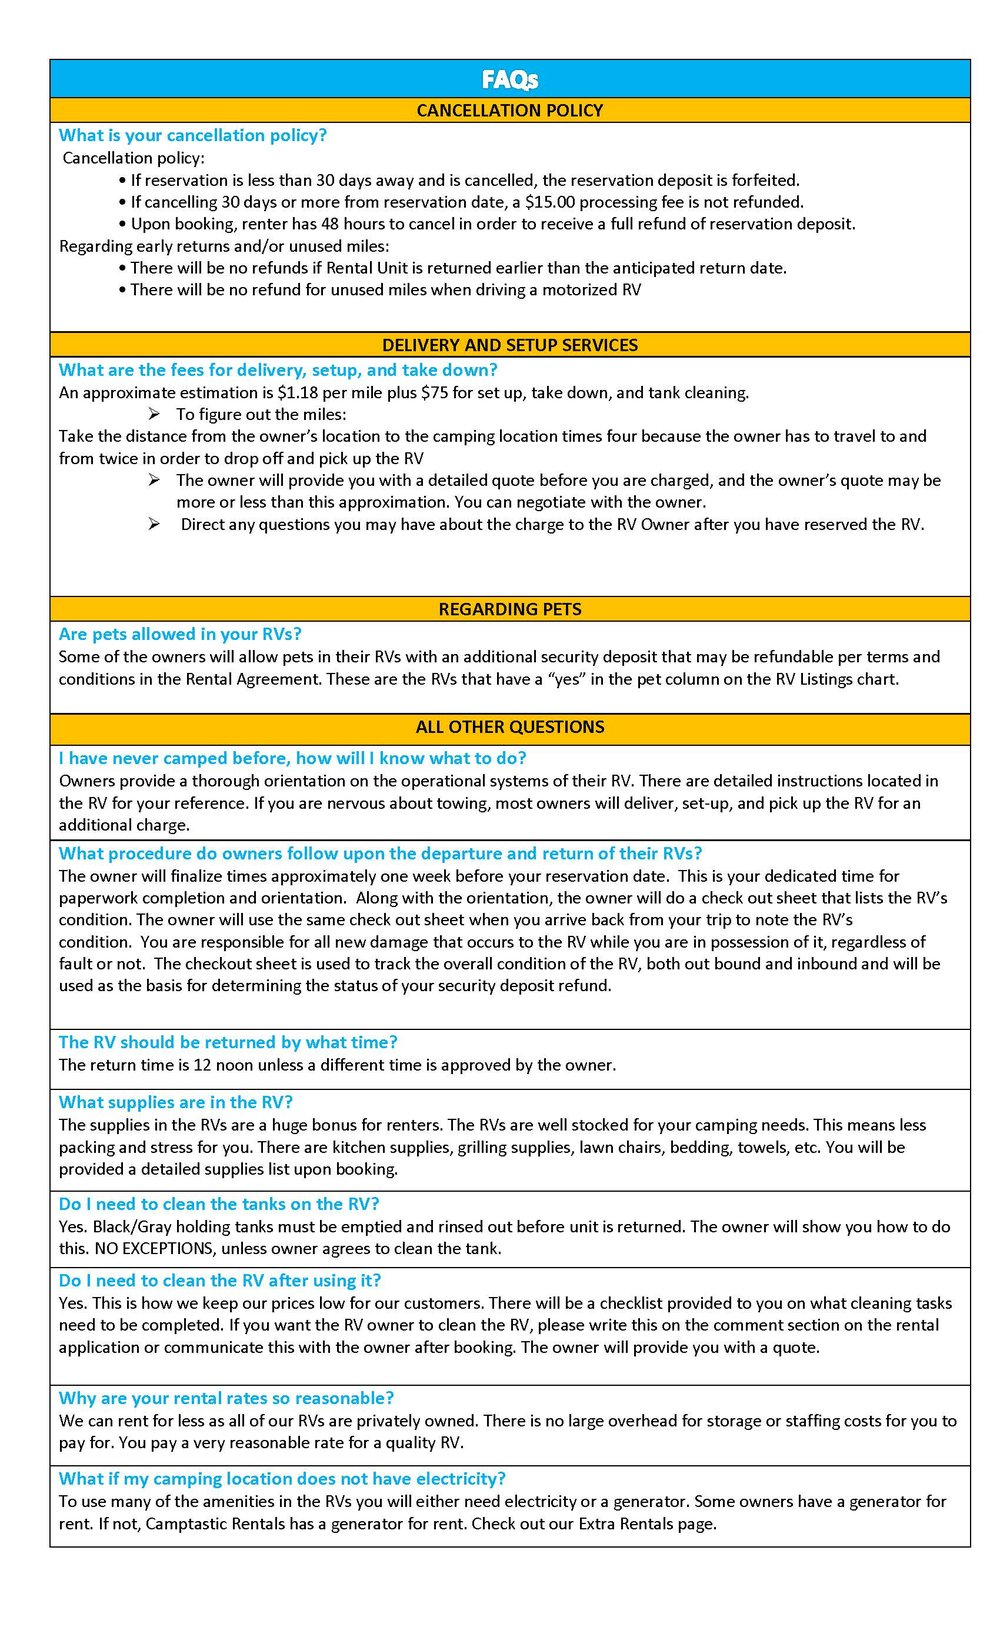 XX FAQs General Questions and Cancellation Policy V2.jpg